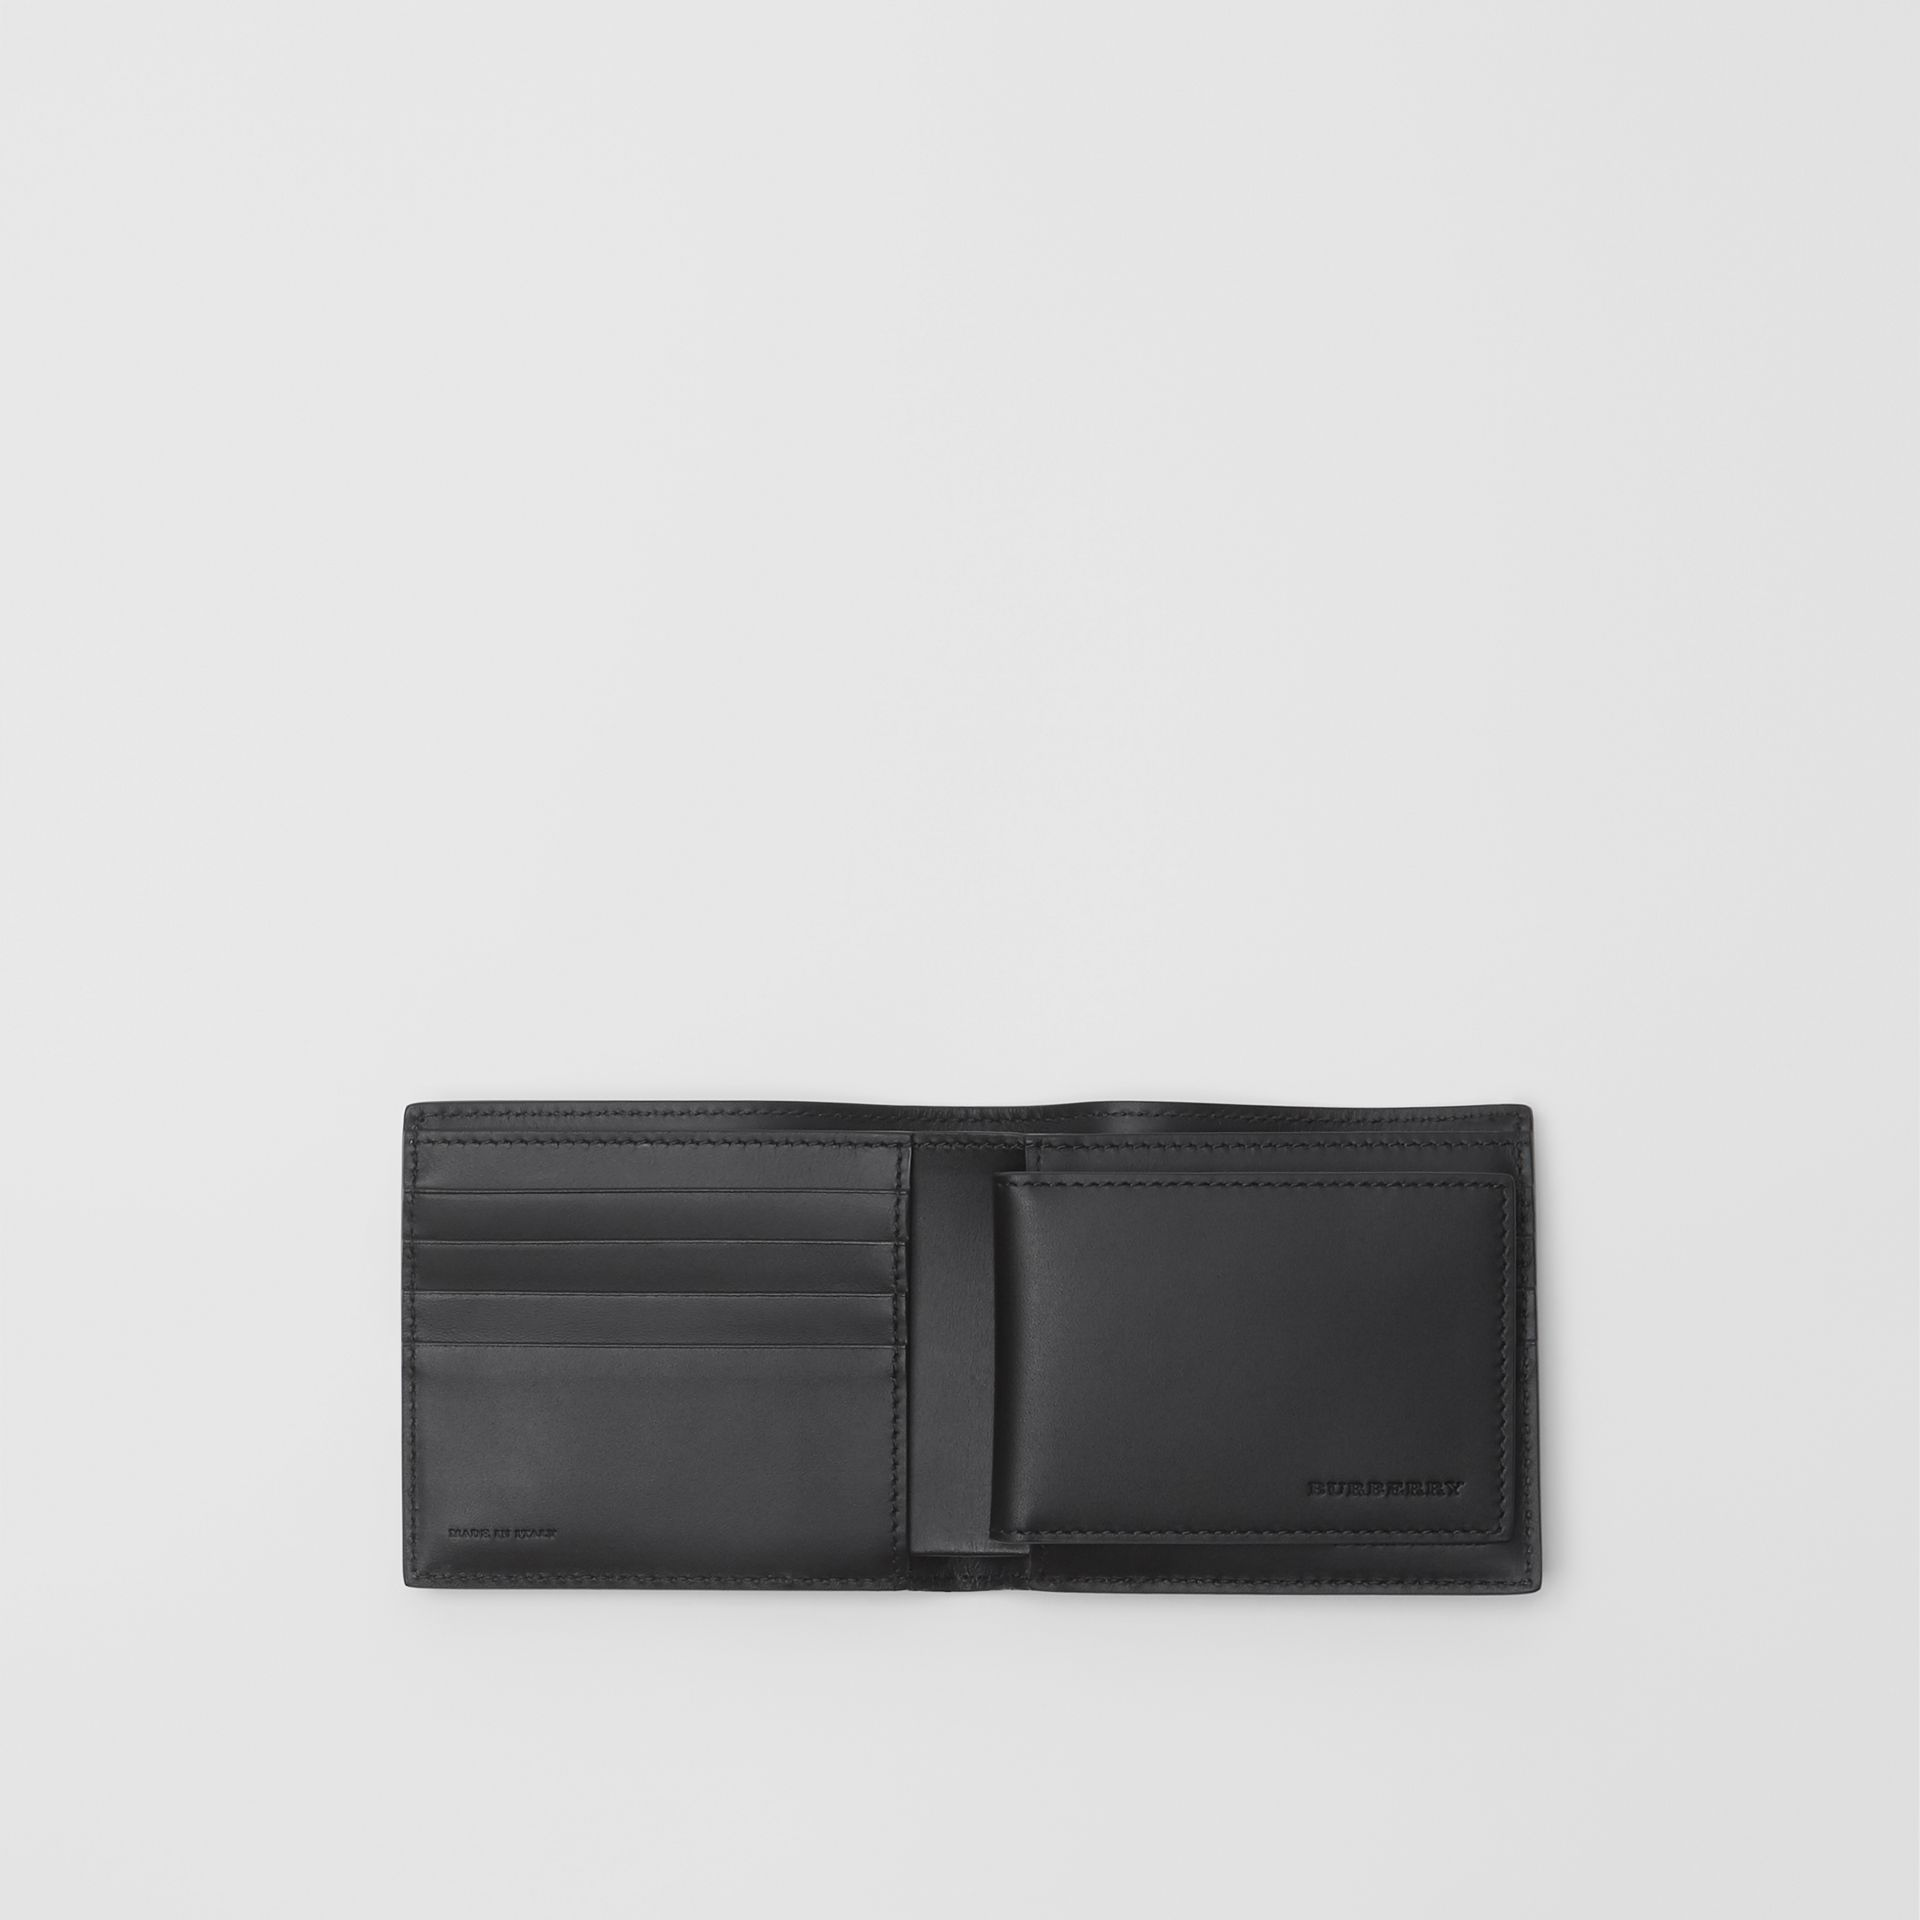 London Leather Bifold Wallet with ID Card Case in Navy - Men | Burberry Singapore - gallery image 2